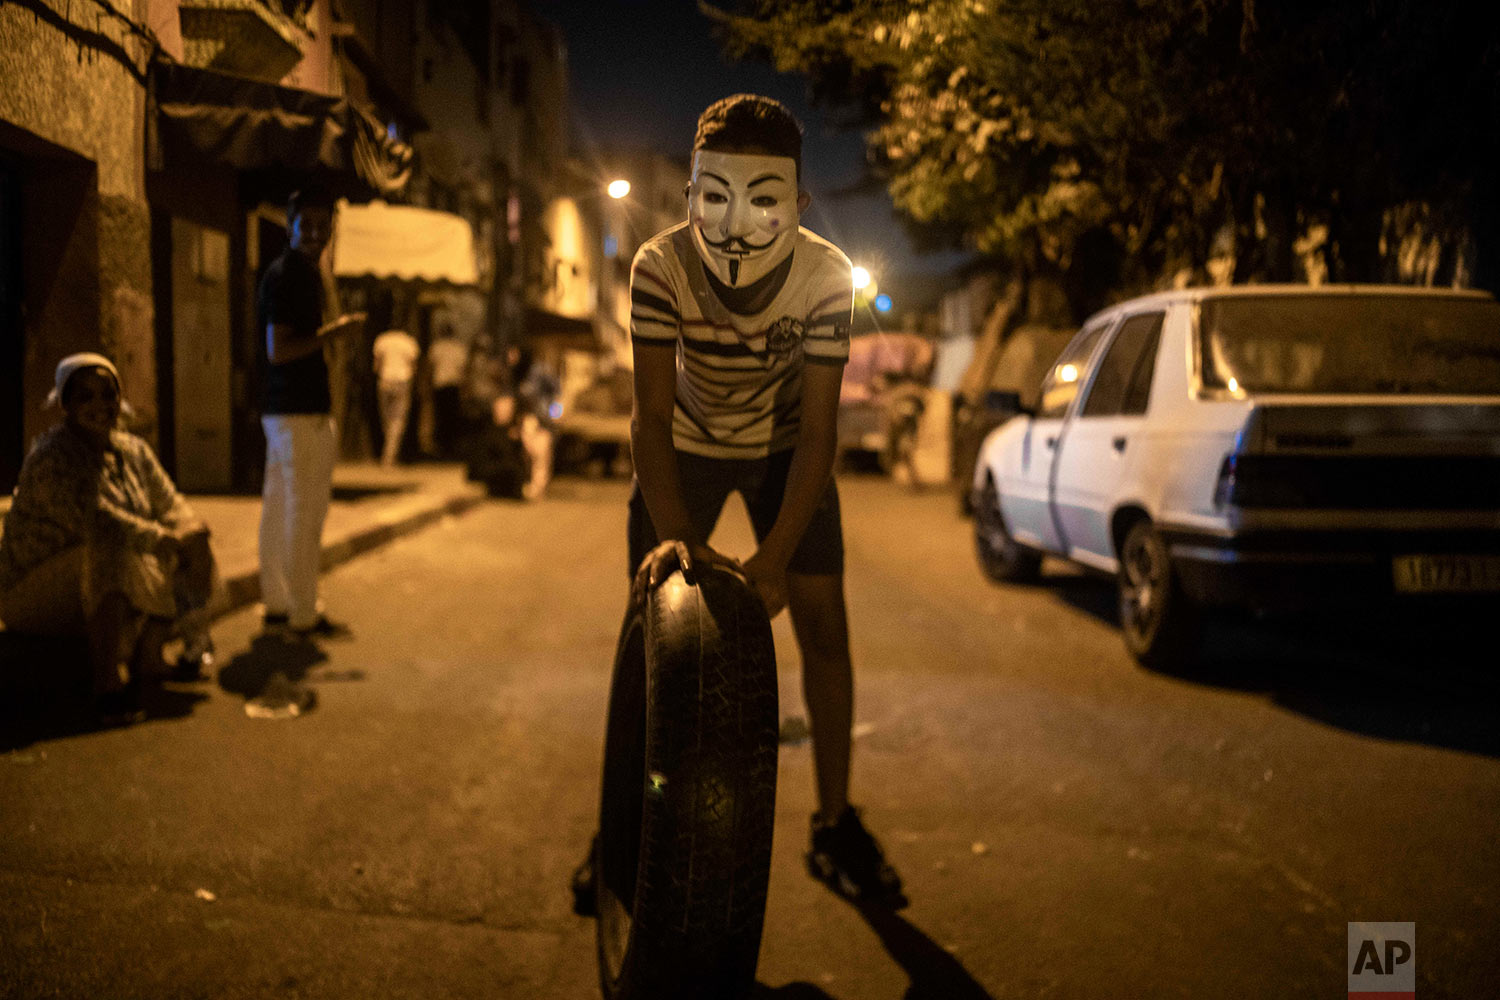 A boy wearing a vendetta mask drags a tire to be lit in a bonfire as part of Ashura celebrations, in Sale, near Rabat, Morocco, Sept. 9, 2019. (AP Photo/Mosa'ab Elshamy)